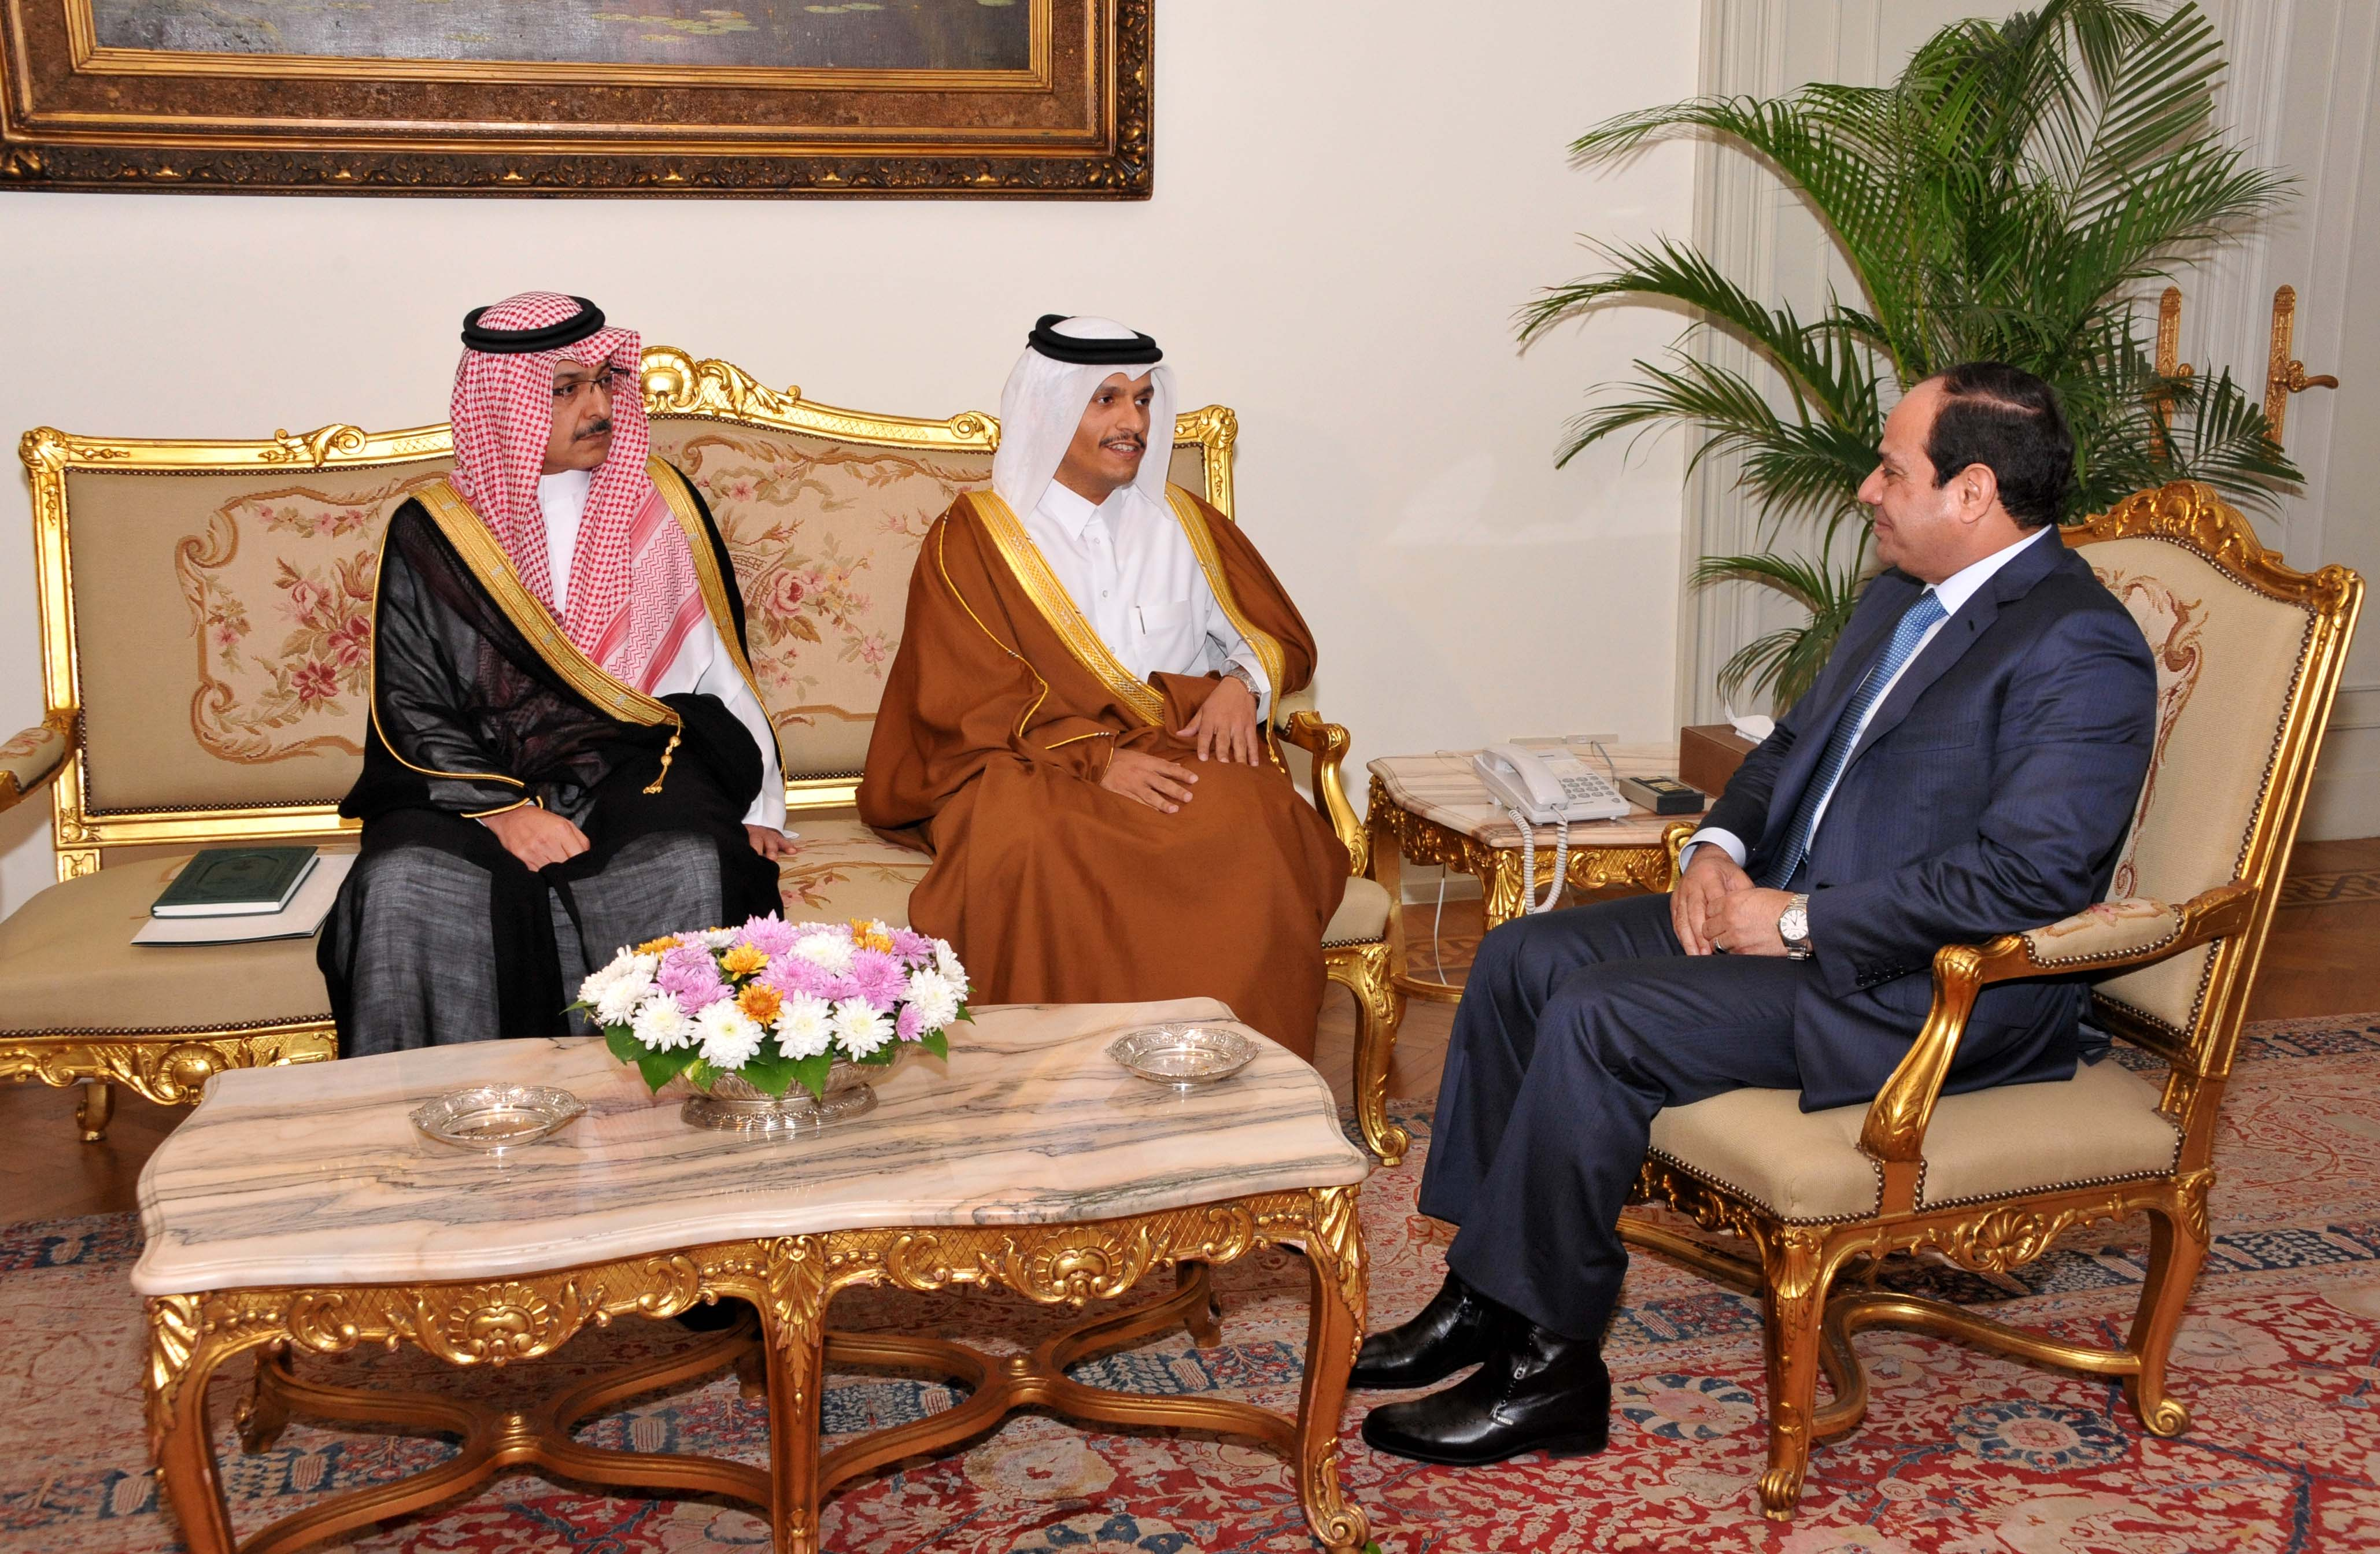 President Abdel Fattah Al-Sisi received the diplomatic envoy on behalf of the Emir of the State of Qatar Sheikh Tamim bin Hamad, (right) and President of the Saudi Royal Court Khalid al-Tuwaijri (left) at the presidential palace on 20 December, 2014